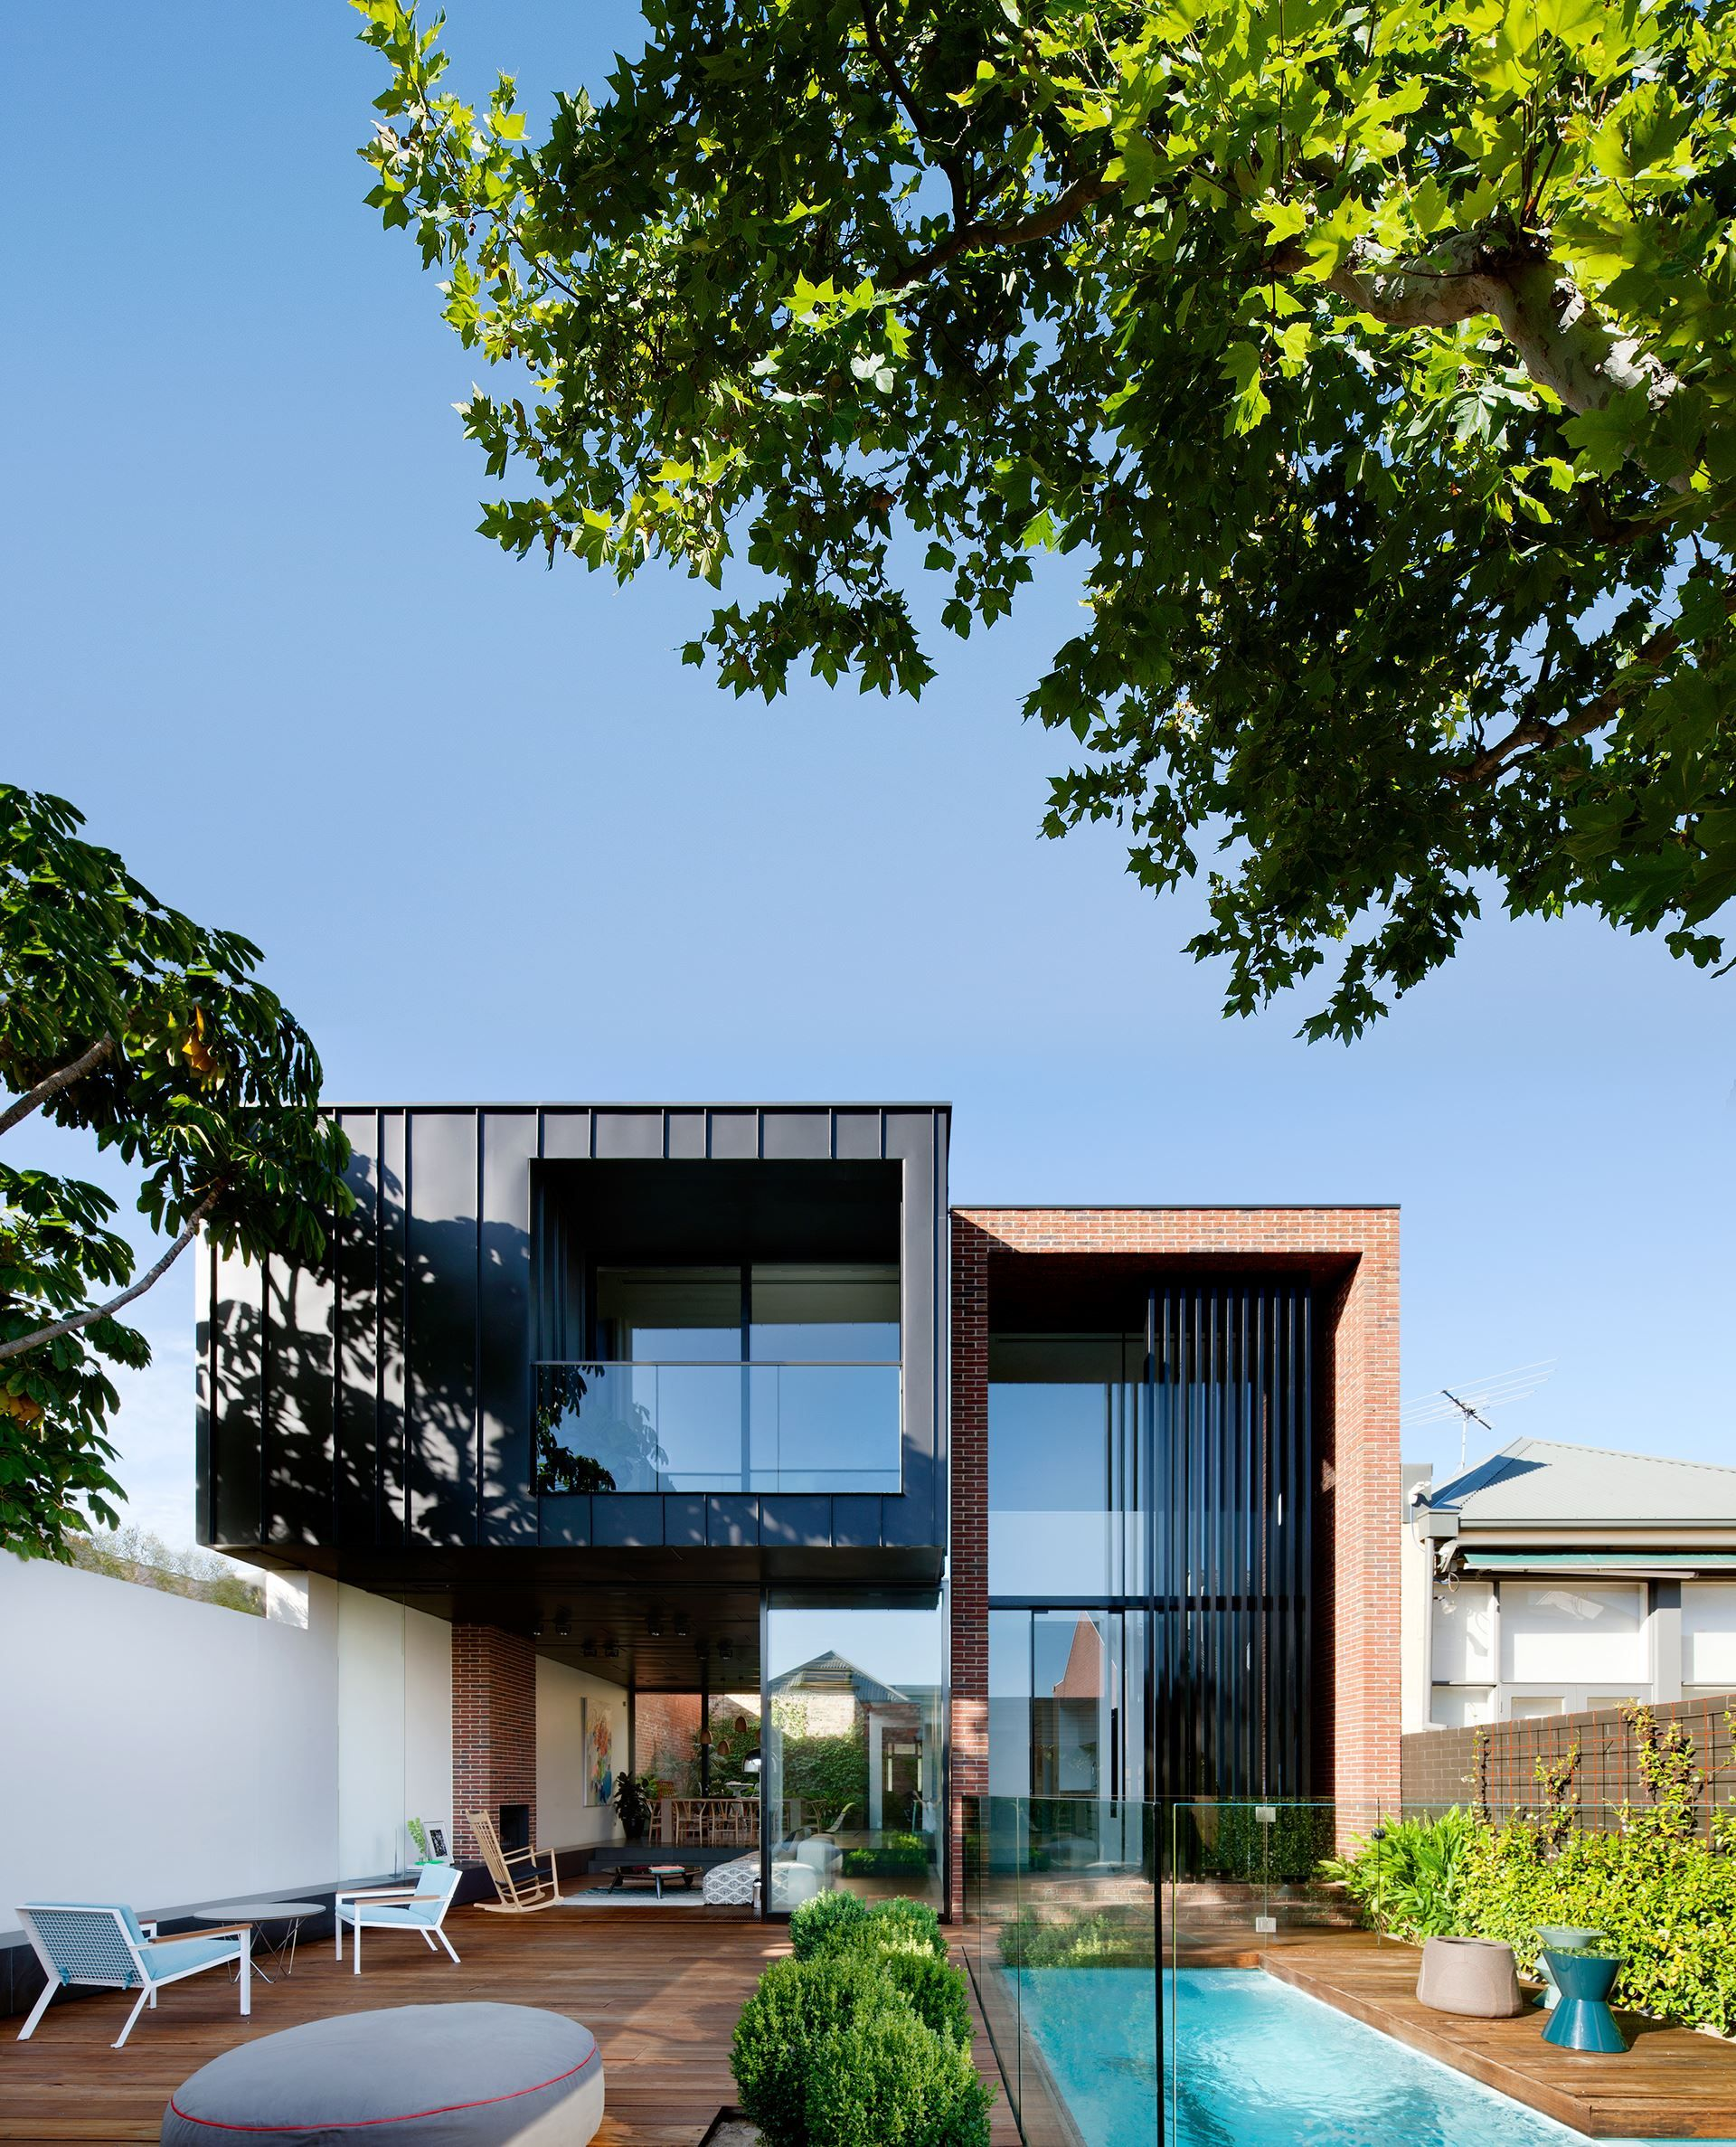 Ultra Modern Home Exteria: The Ultra-modern Addition At The Rear Of The House Belies